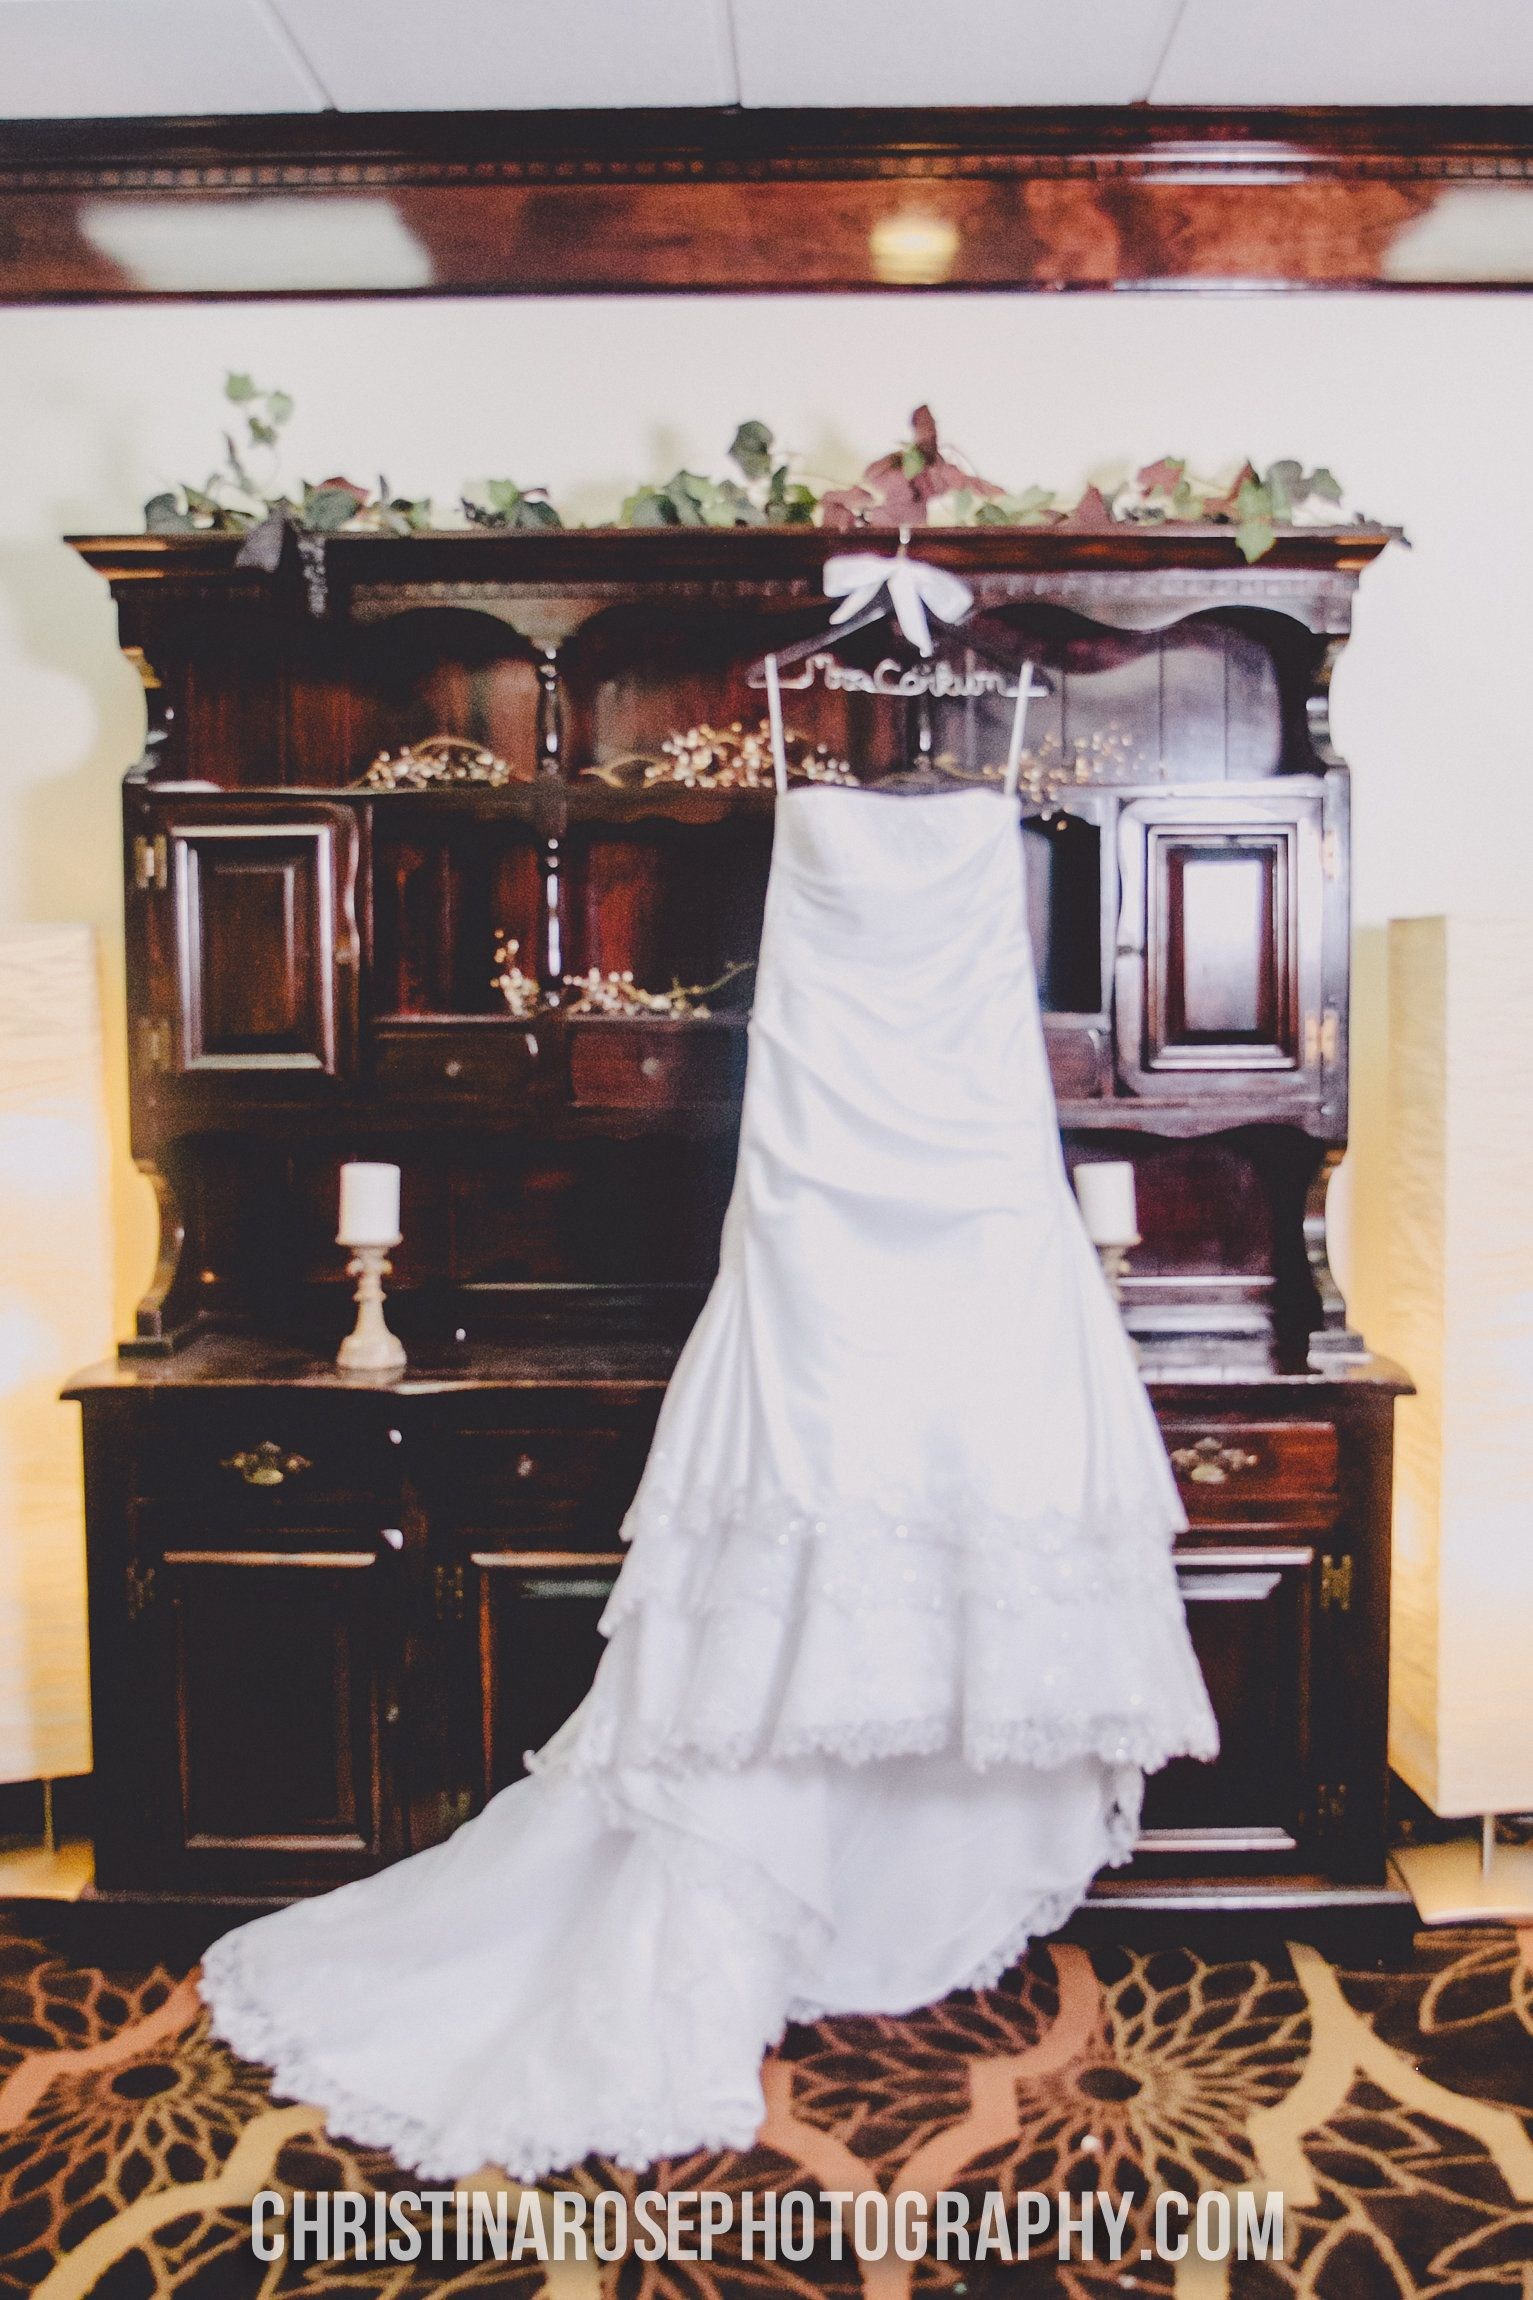 A white wedding gown hung on a personalized hanger in our Bridal Suite